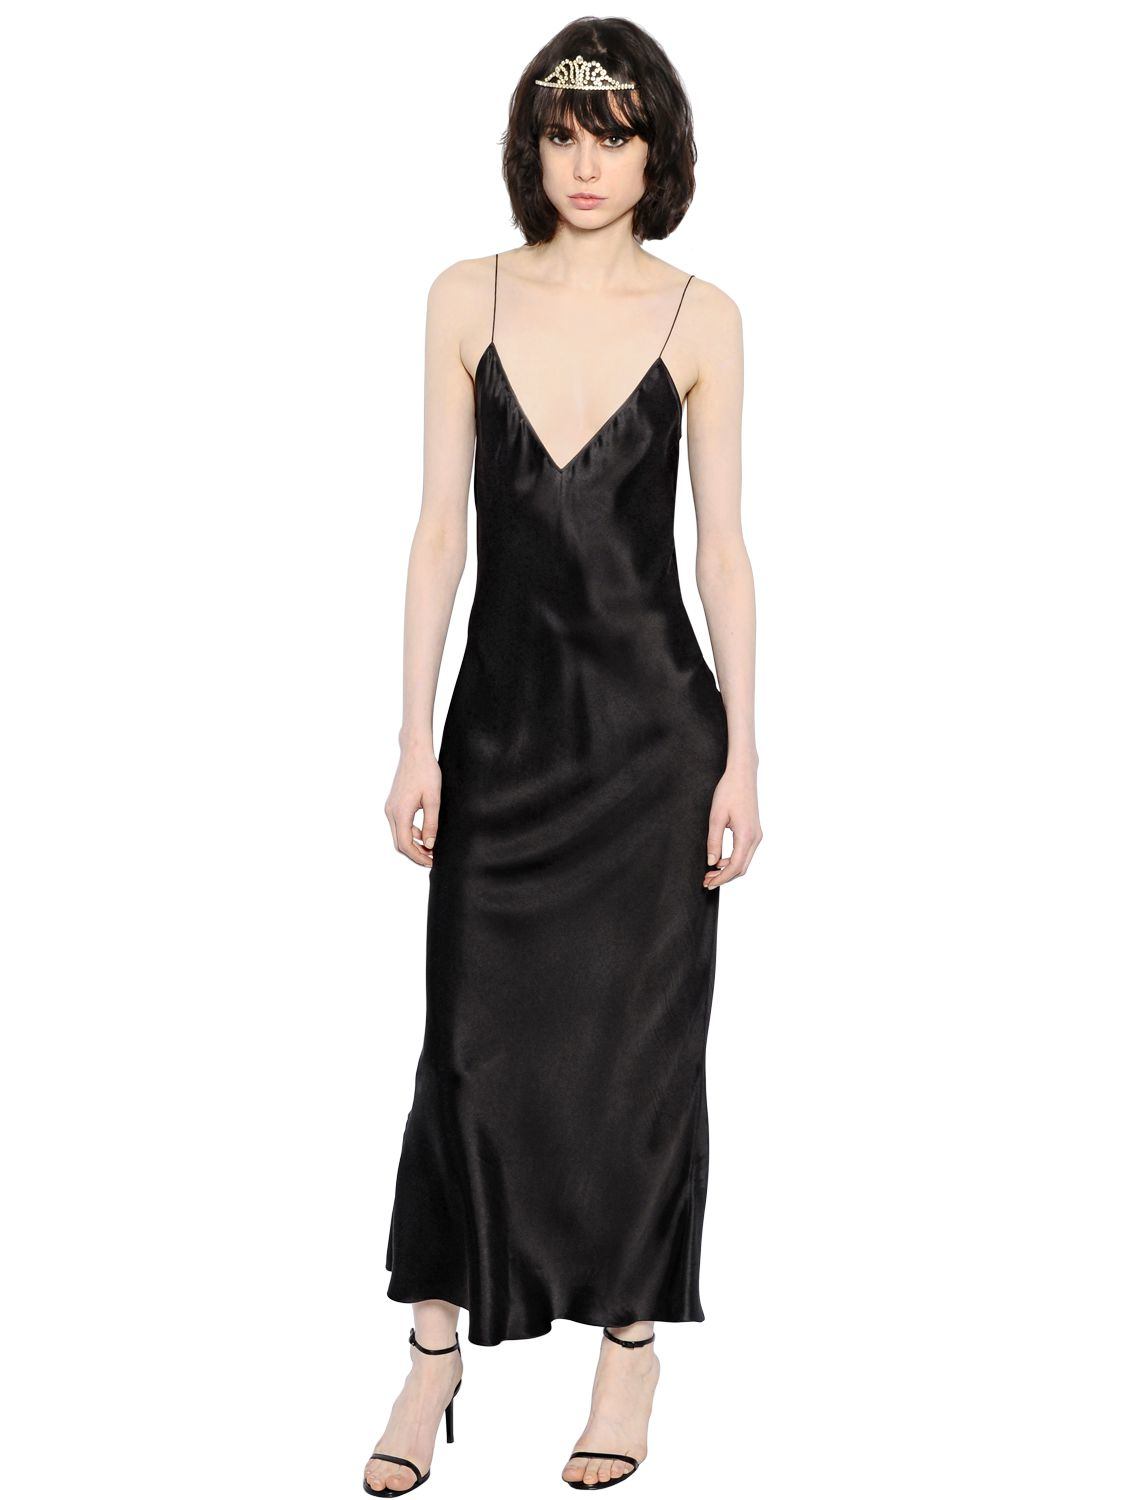 Satin Maxi Dresses for Women; Skip to page navigation. Filter (2) Satin Maxi Dresses for Women. Shop by Sleeve Length. Connie's Stretch Black Satin Halter Maxi Party Dress with accent ties S. $ Women's Vintage Costume Victorian Blue Satin Ruffle prom Maxi Ball Gown Dresses.